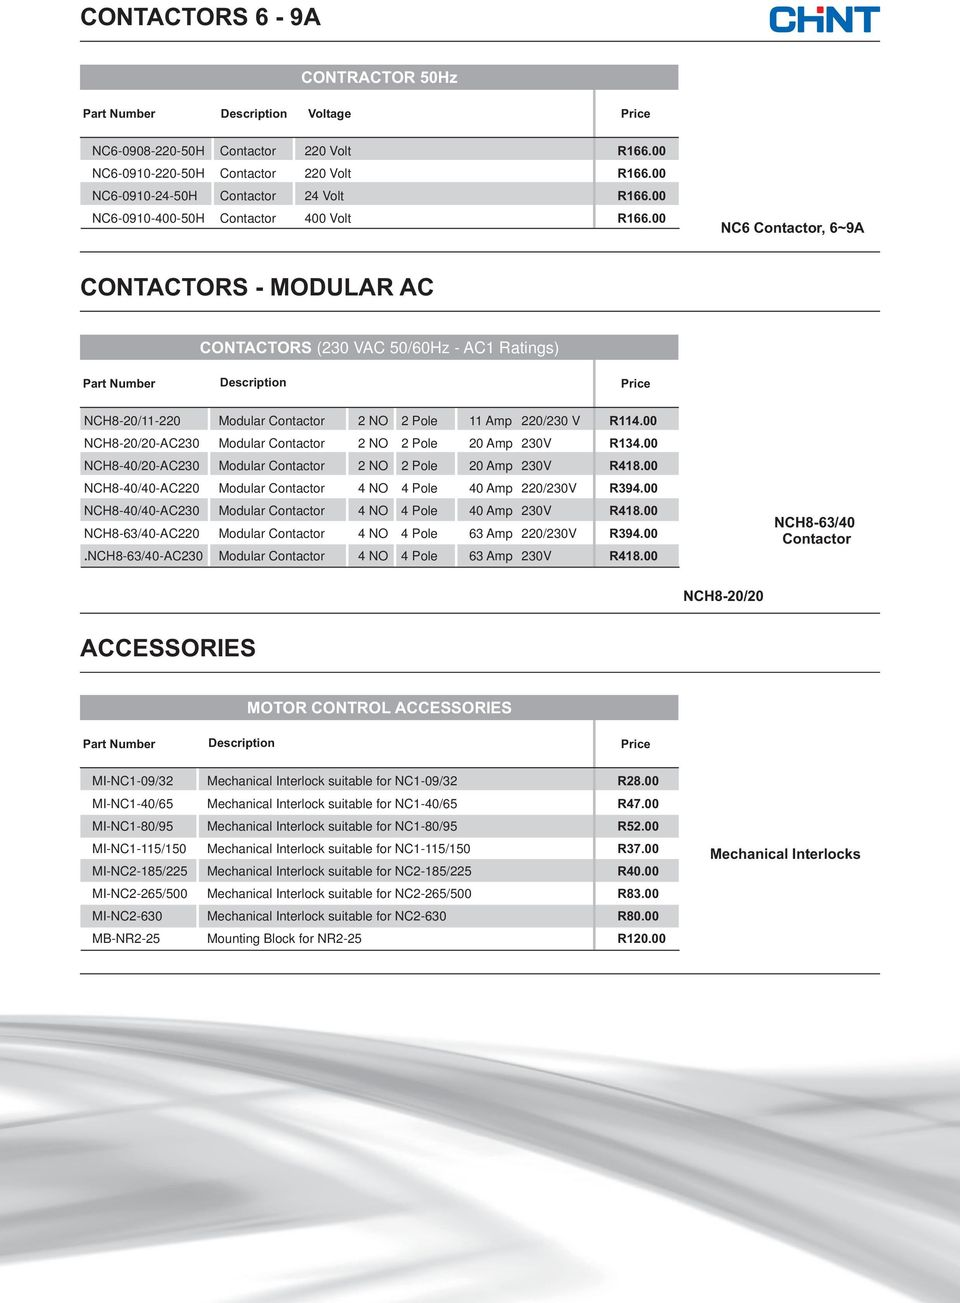 Ced Consolidated Electrical Distributor Pdf 220 Amp 22 Fuses Breaker Box 00 Nch8 20 Ac230 Modular Contactor 2 No Pole